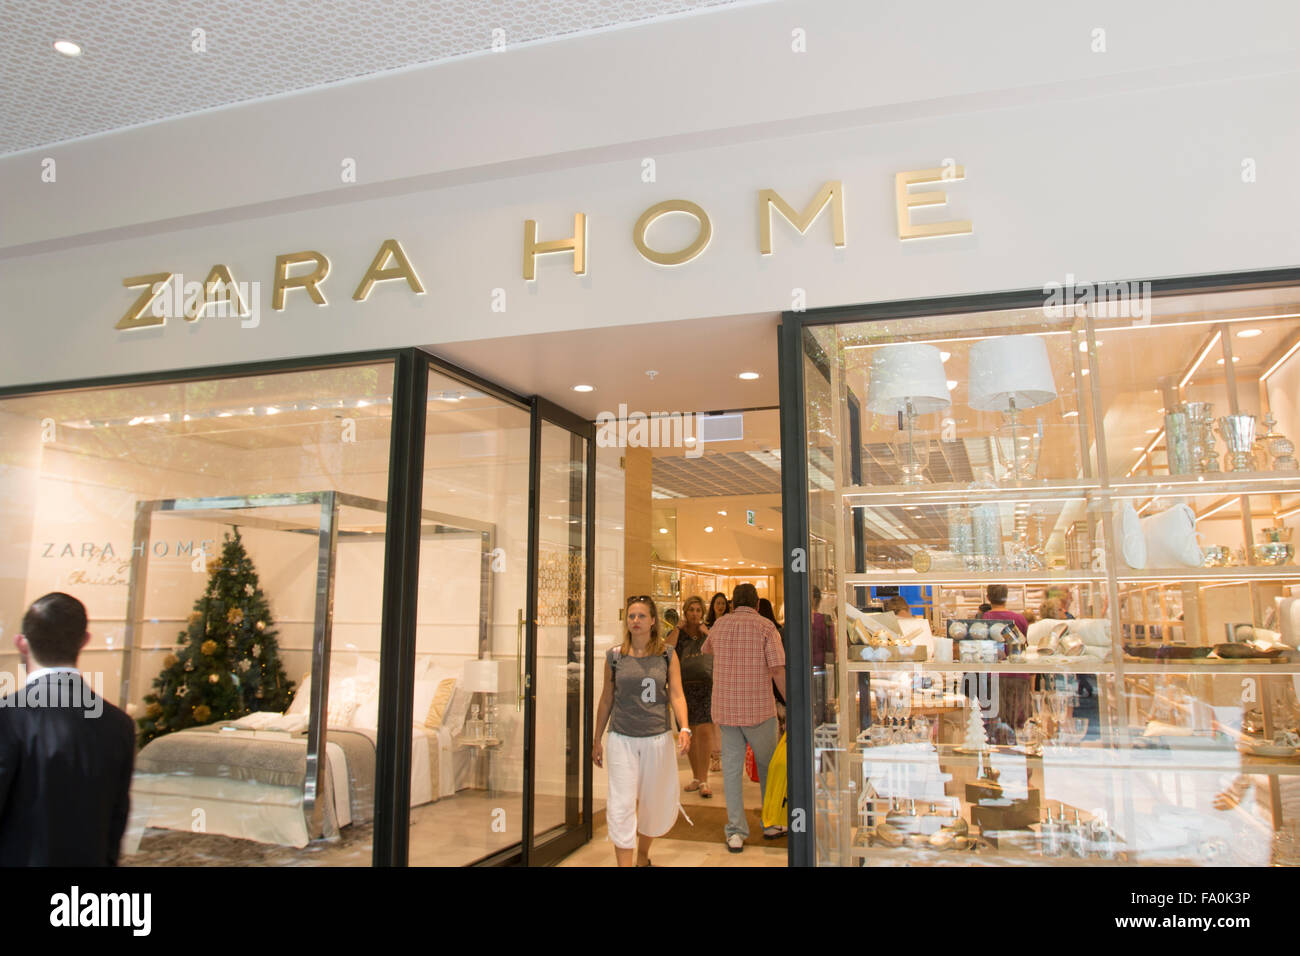 Zara Home Photos Zara Home Images Alamy